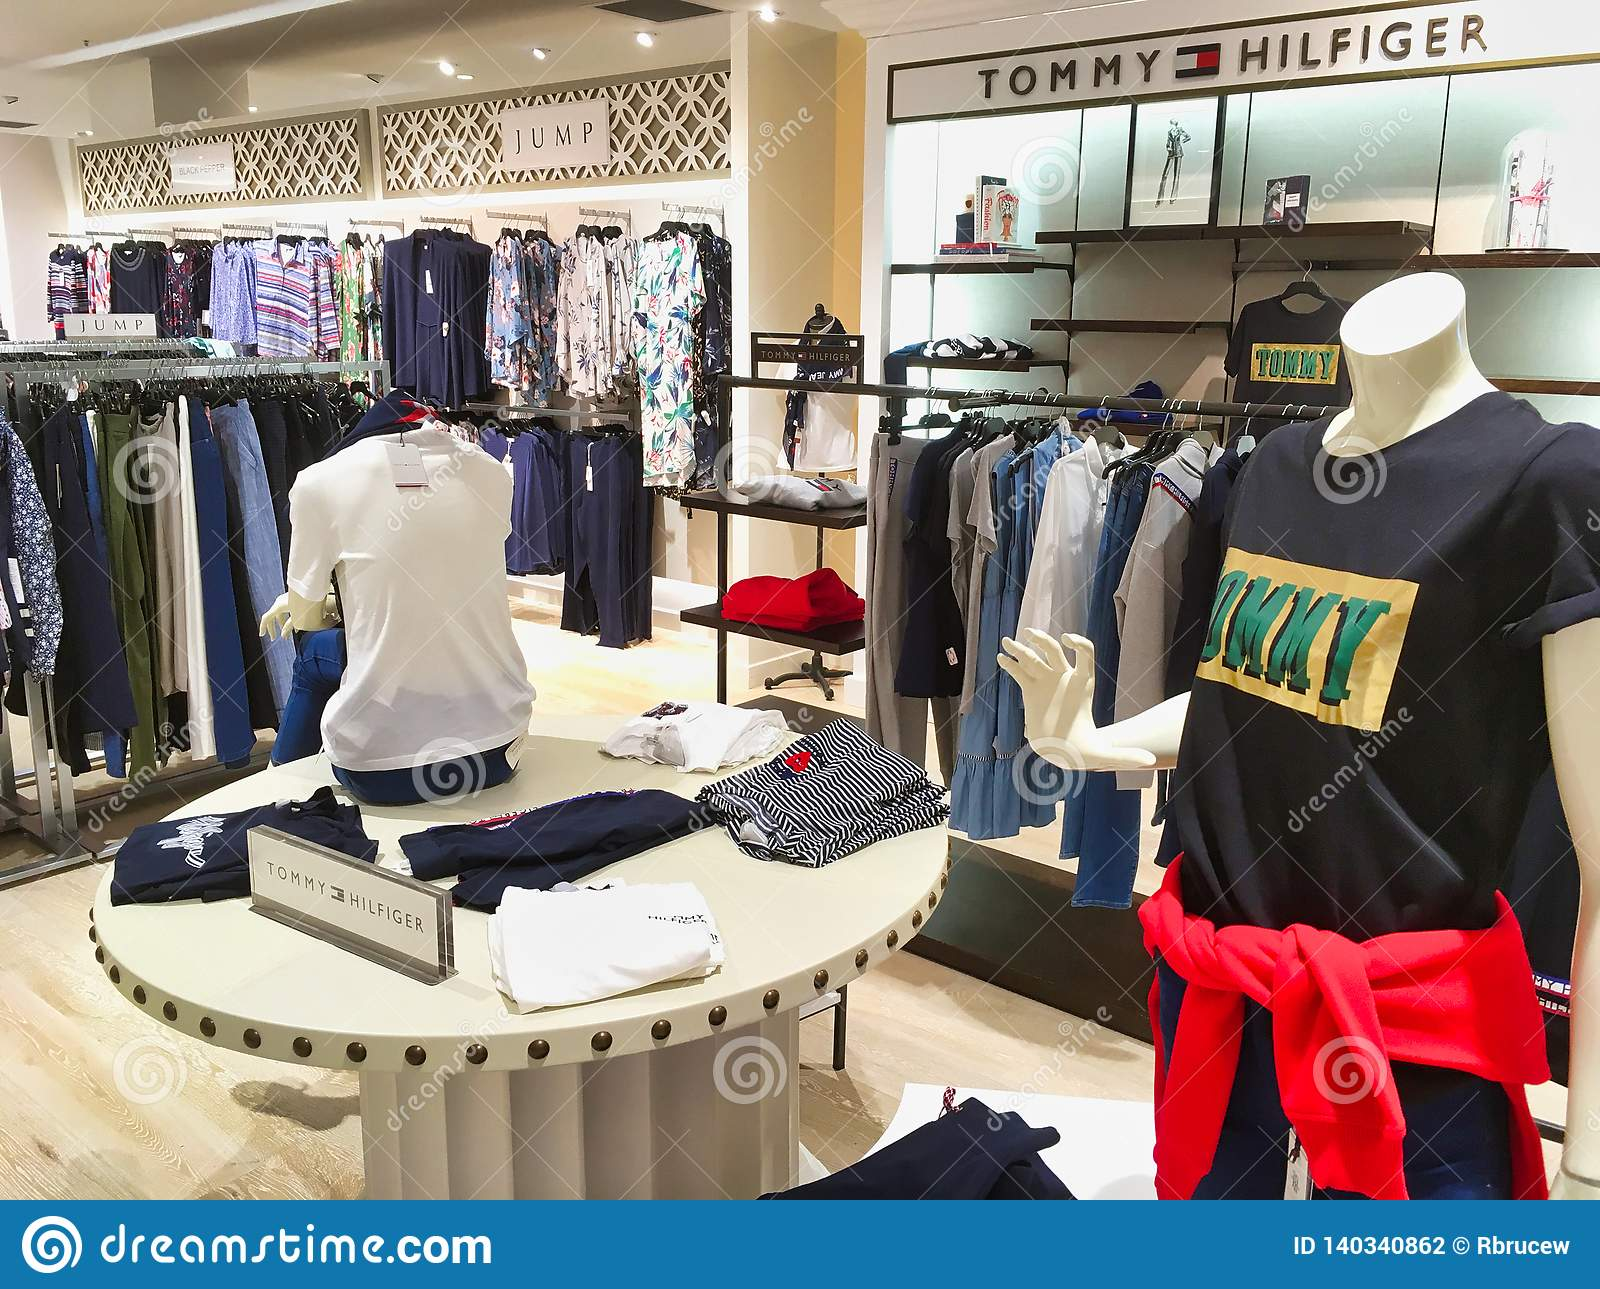 184ccc68 Racks of women`s clothes in large modern department store or shop, Sydney,  Australia. Tommy Hilfiger designer clothes.